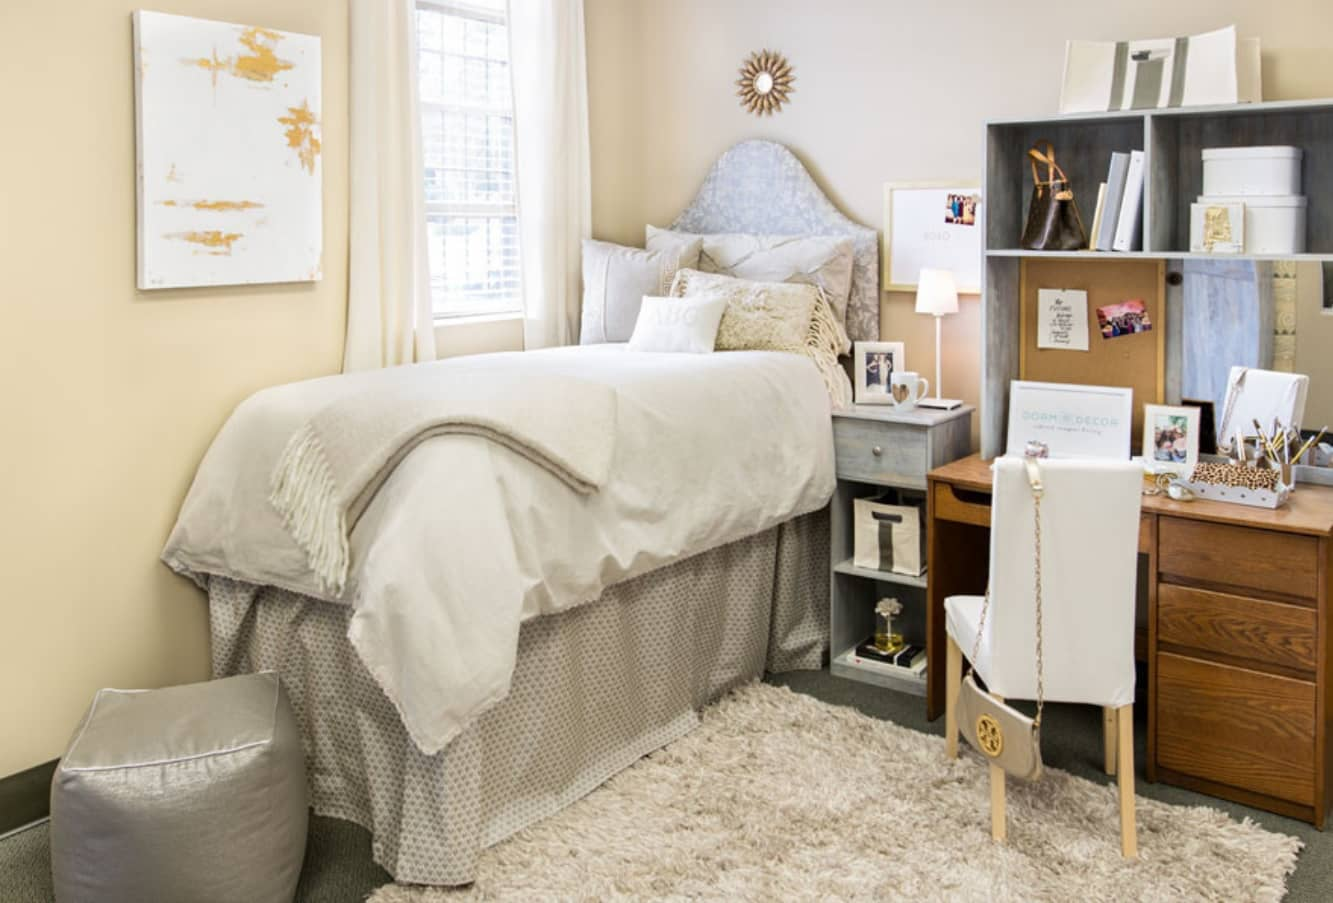 Five Ideas to Make Your Dorm Room Look Stylish and be Ergonomic. Cute personalized dormitory in Shabby Chic style